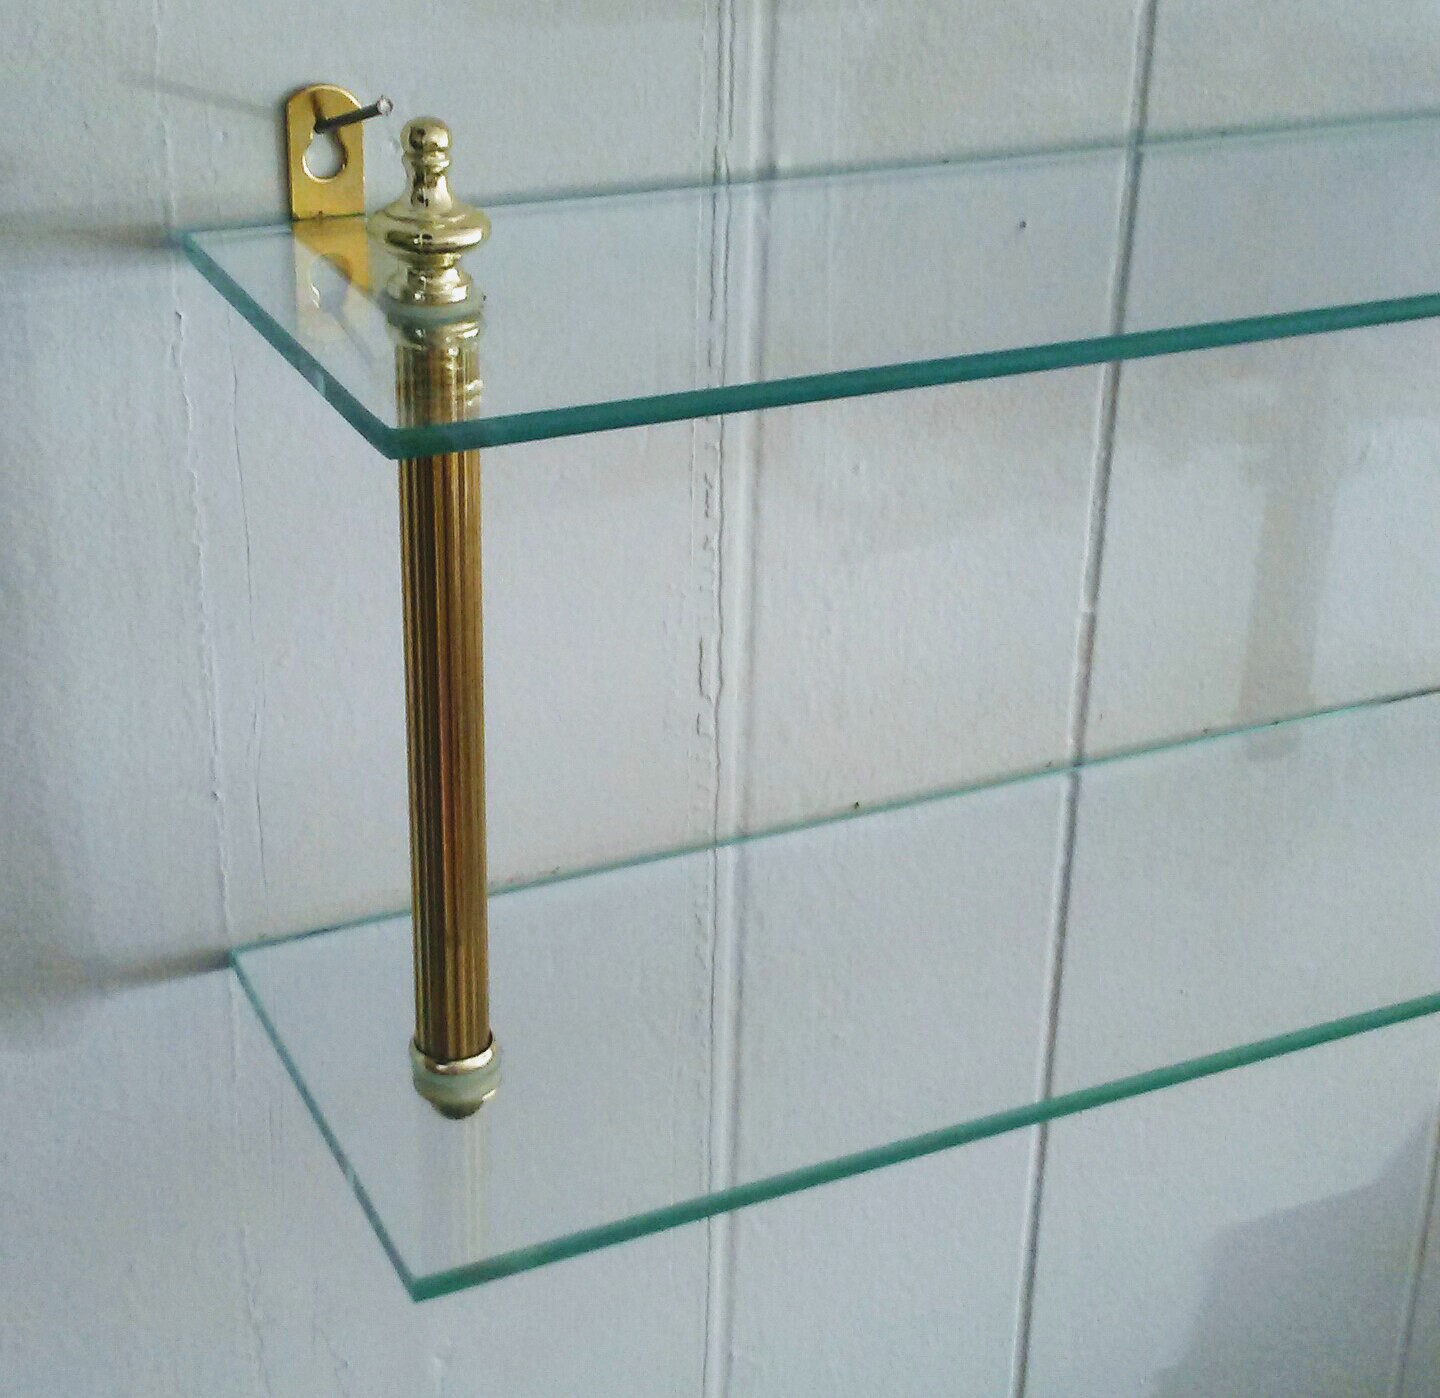 Brass Shelf, Bathroom Shelf, Glass Shelf, Vintage Shelf, Wall Shelf ...